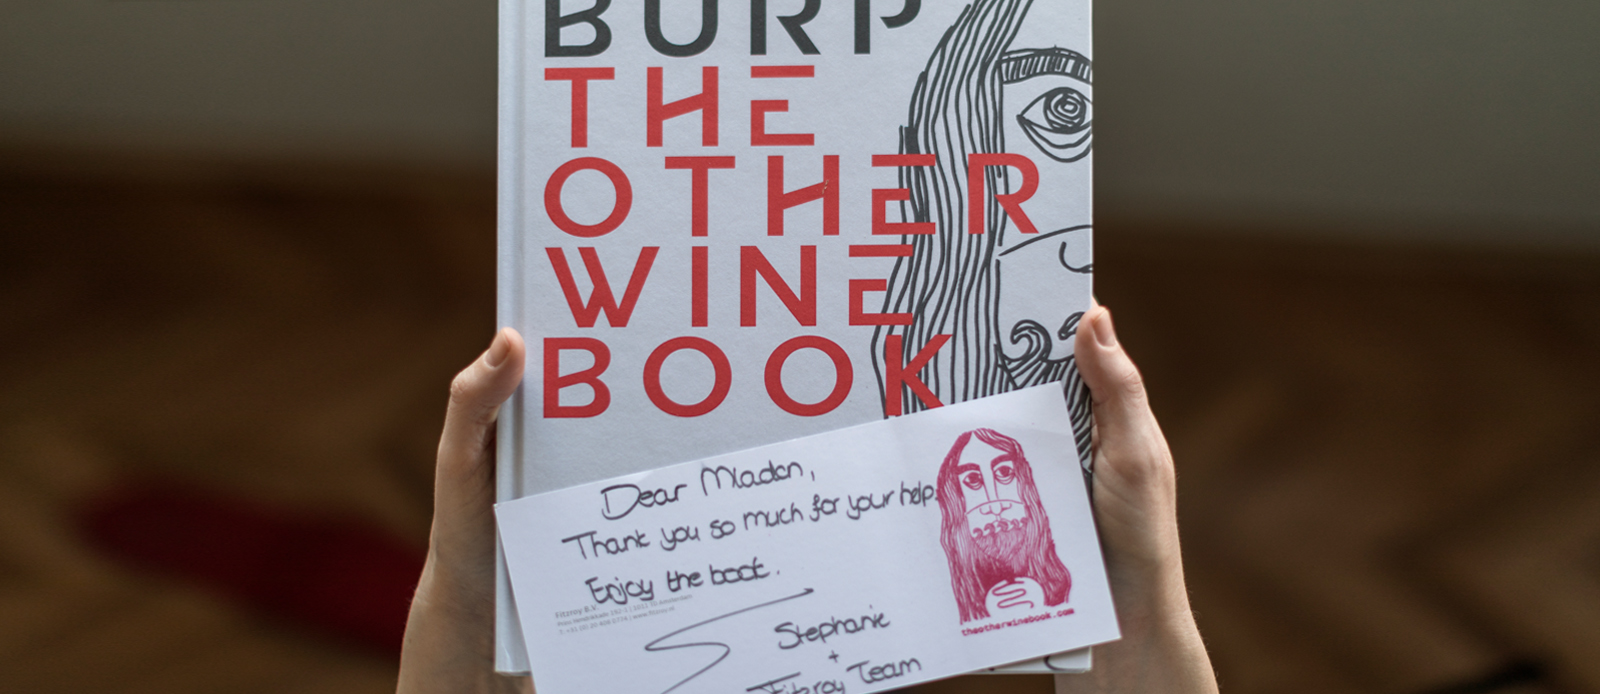 Piquentum u knjizi Burp – The other wine book